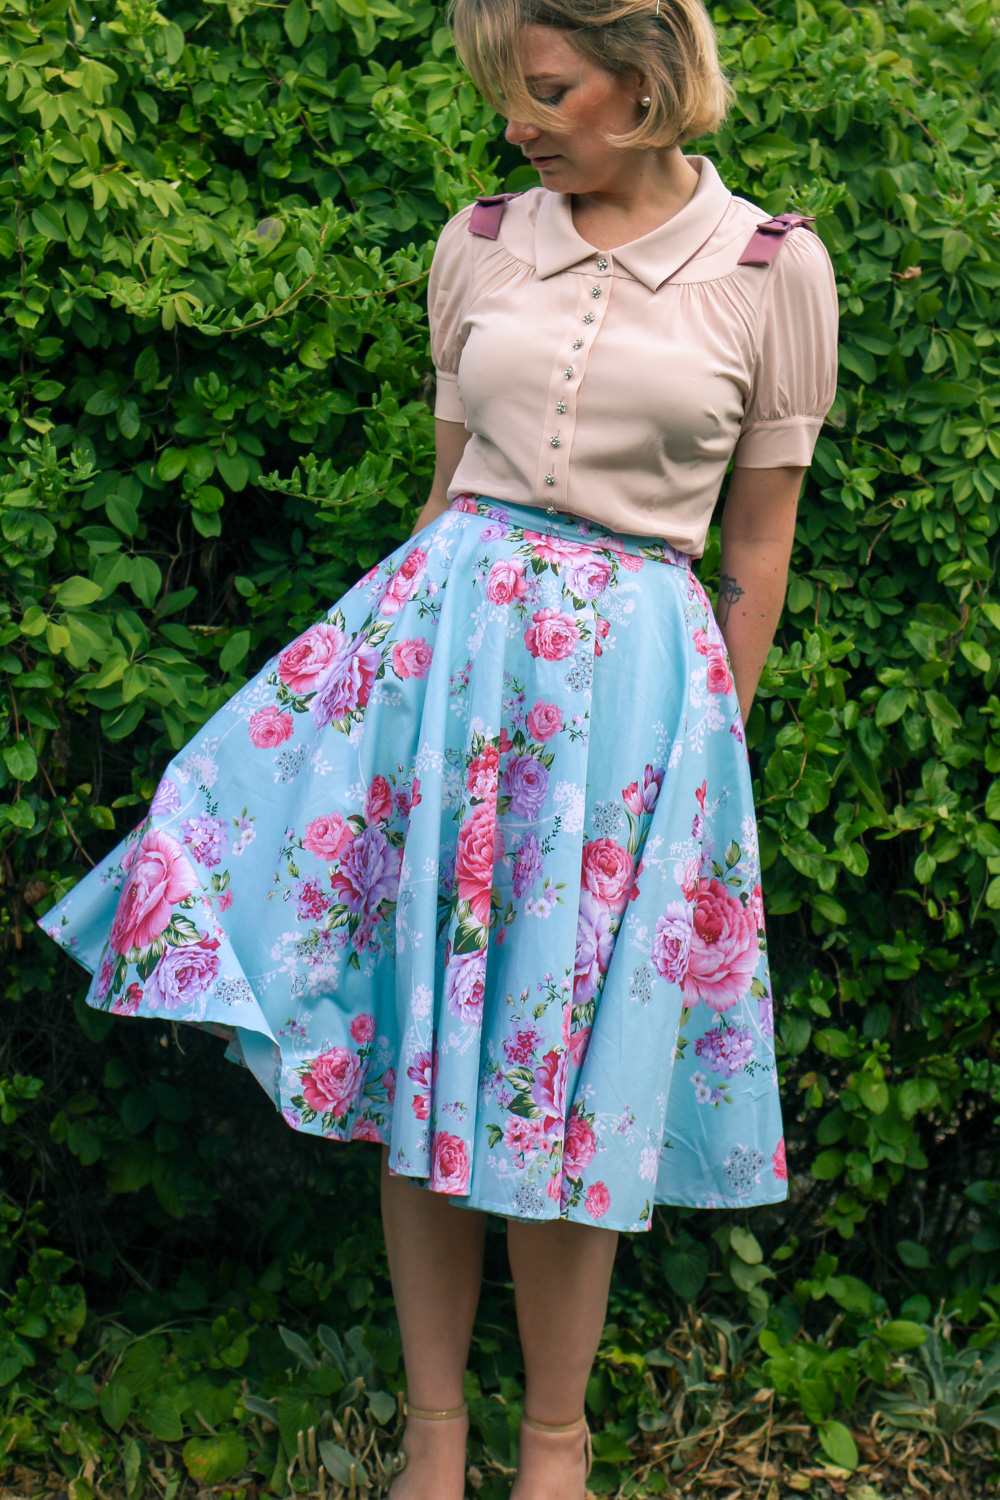 @findingfemme wears blue floral midi skirt and Alannah Hill blouse.